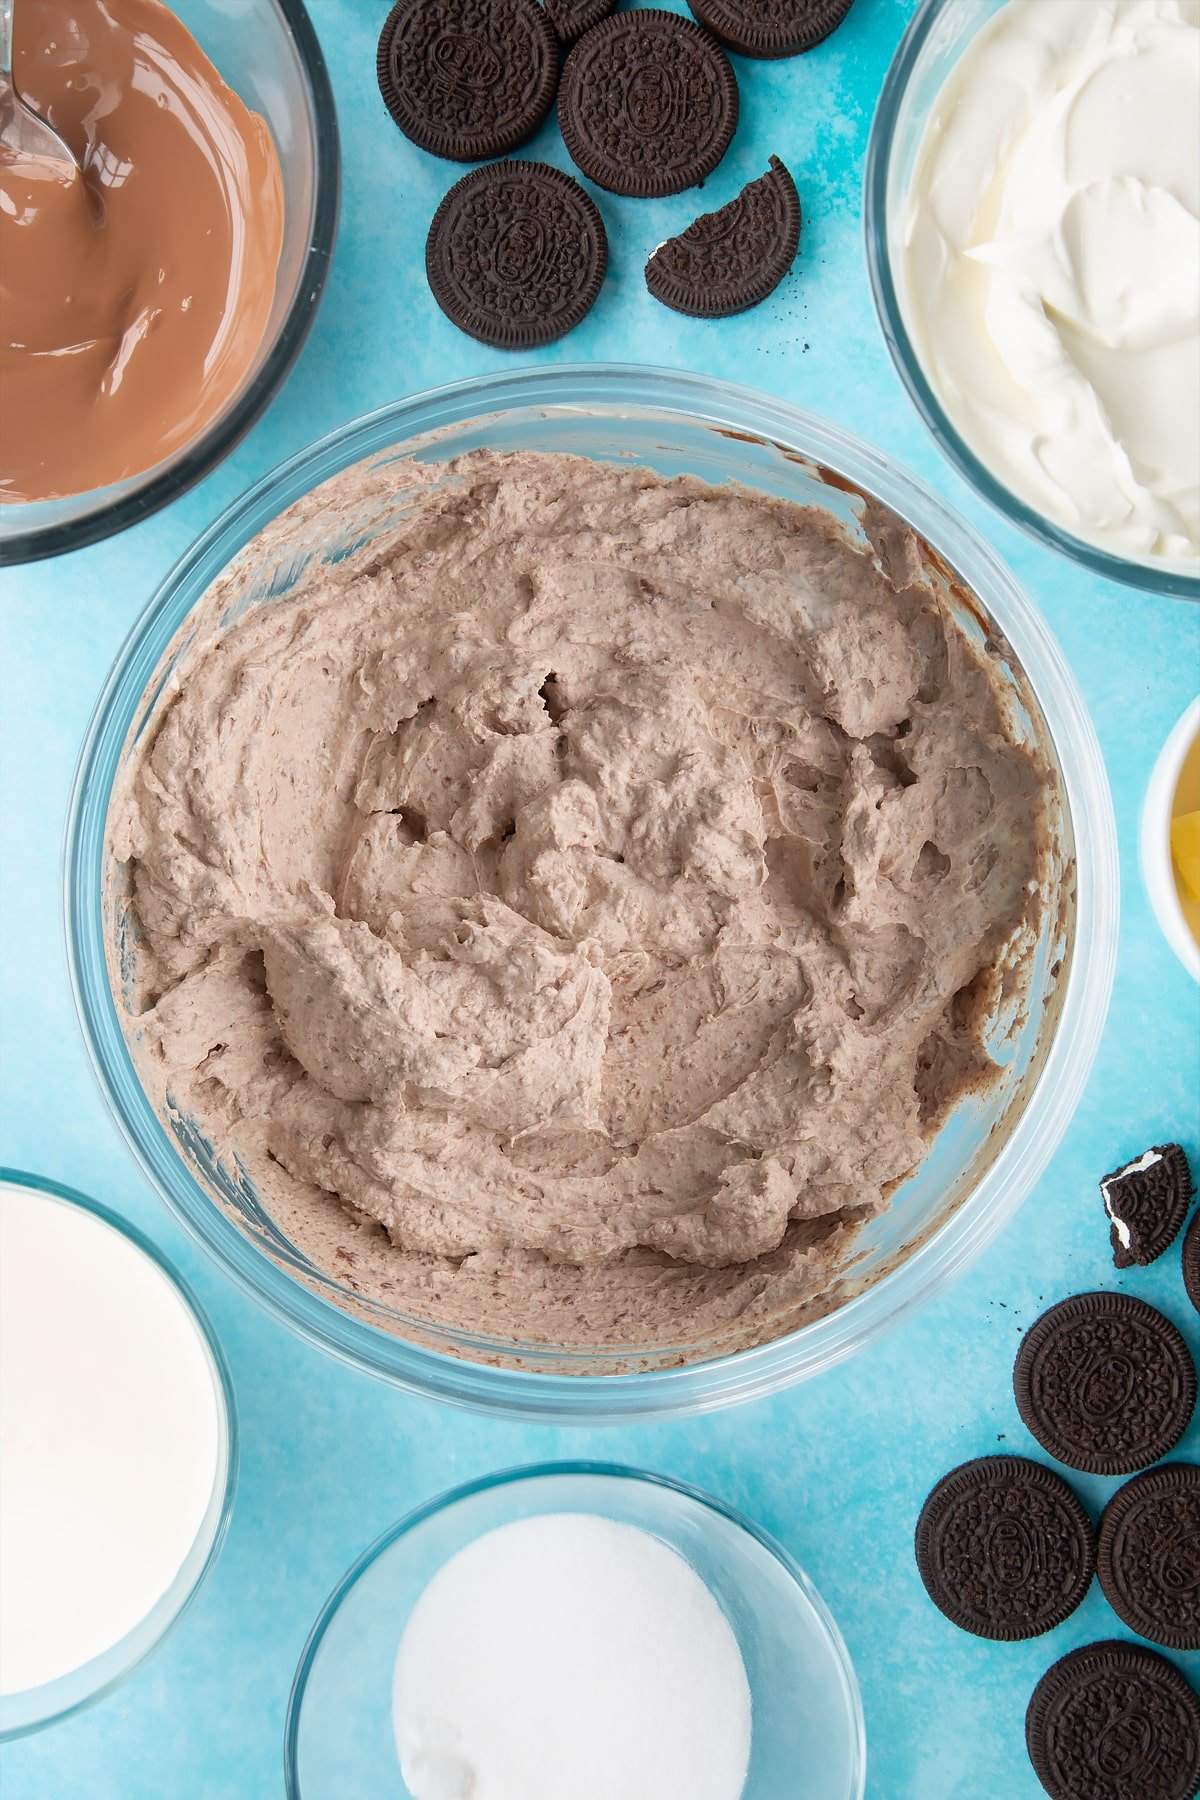 Overhead shot of whipped ingredients mixed with melted chocolate in a large clear bowl